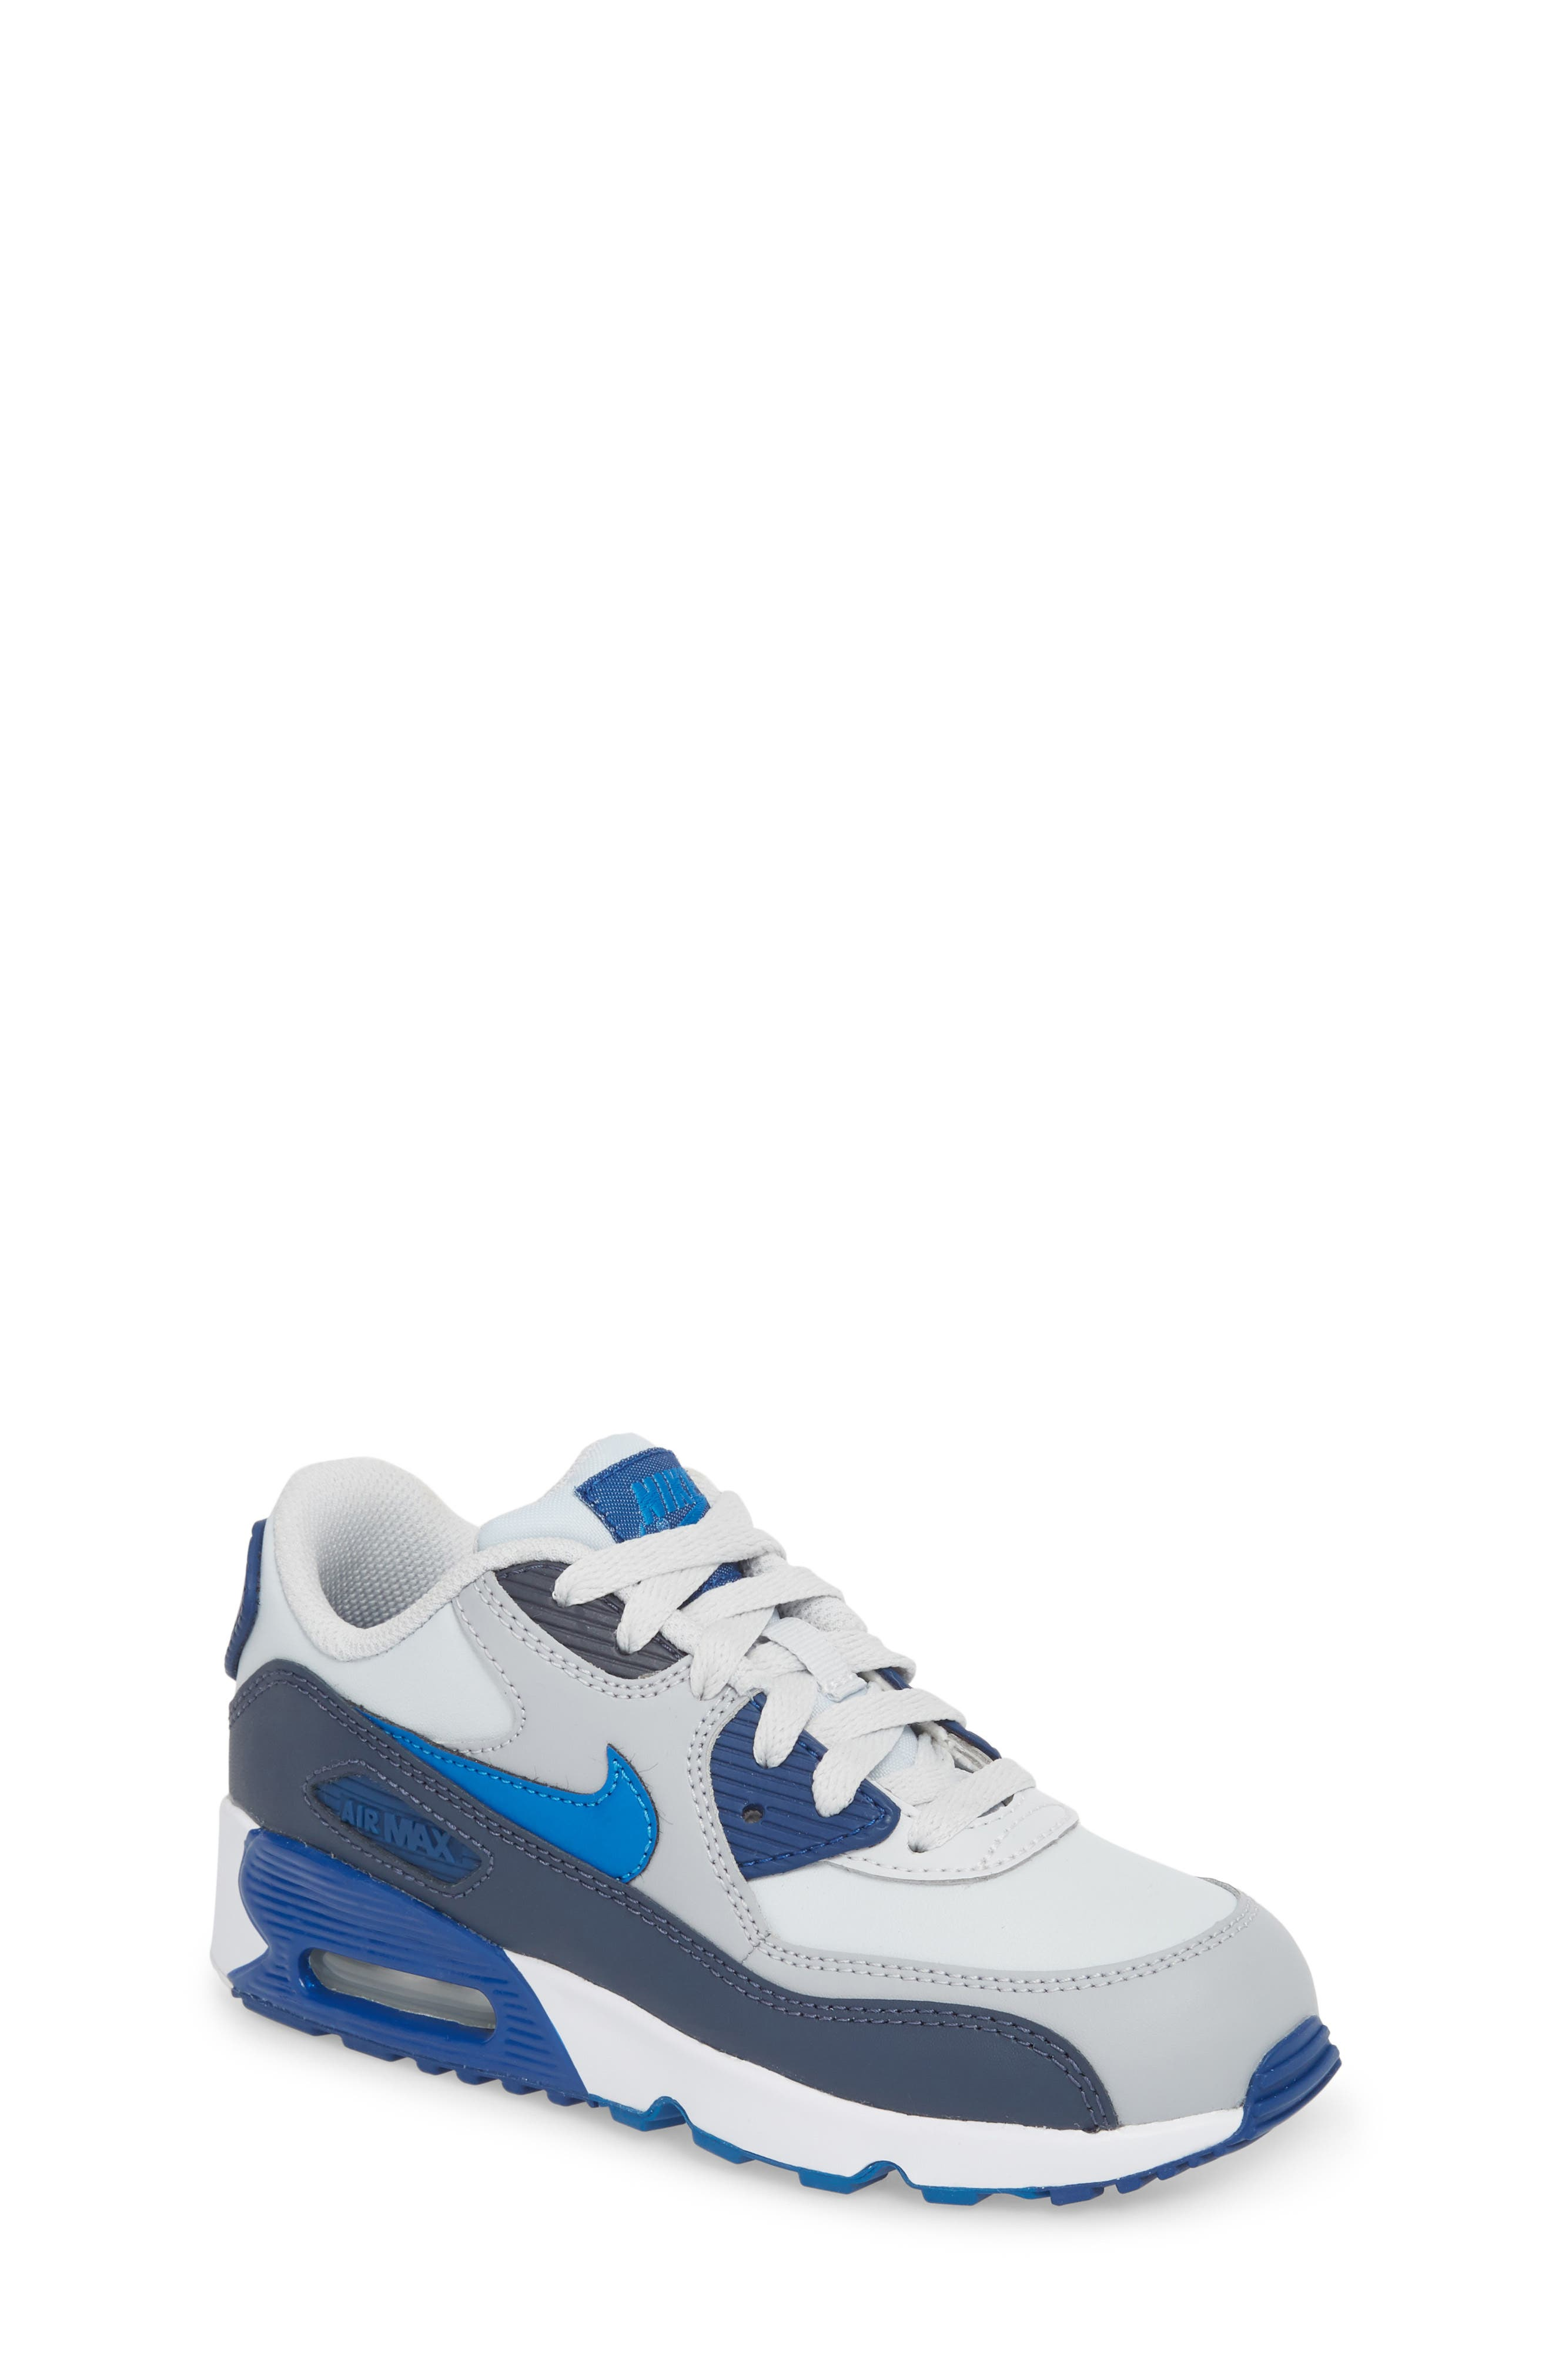 Air Max 90 Sneaker,                             Main thumbnail 1, color,                             Blue Nebula/ Wolf Grey